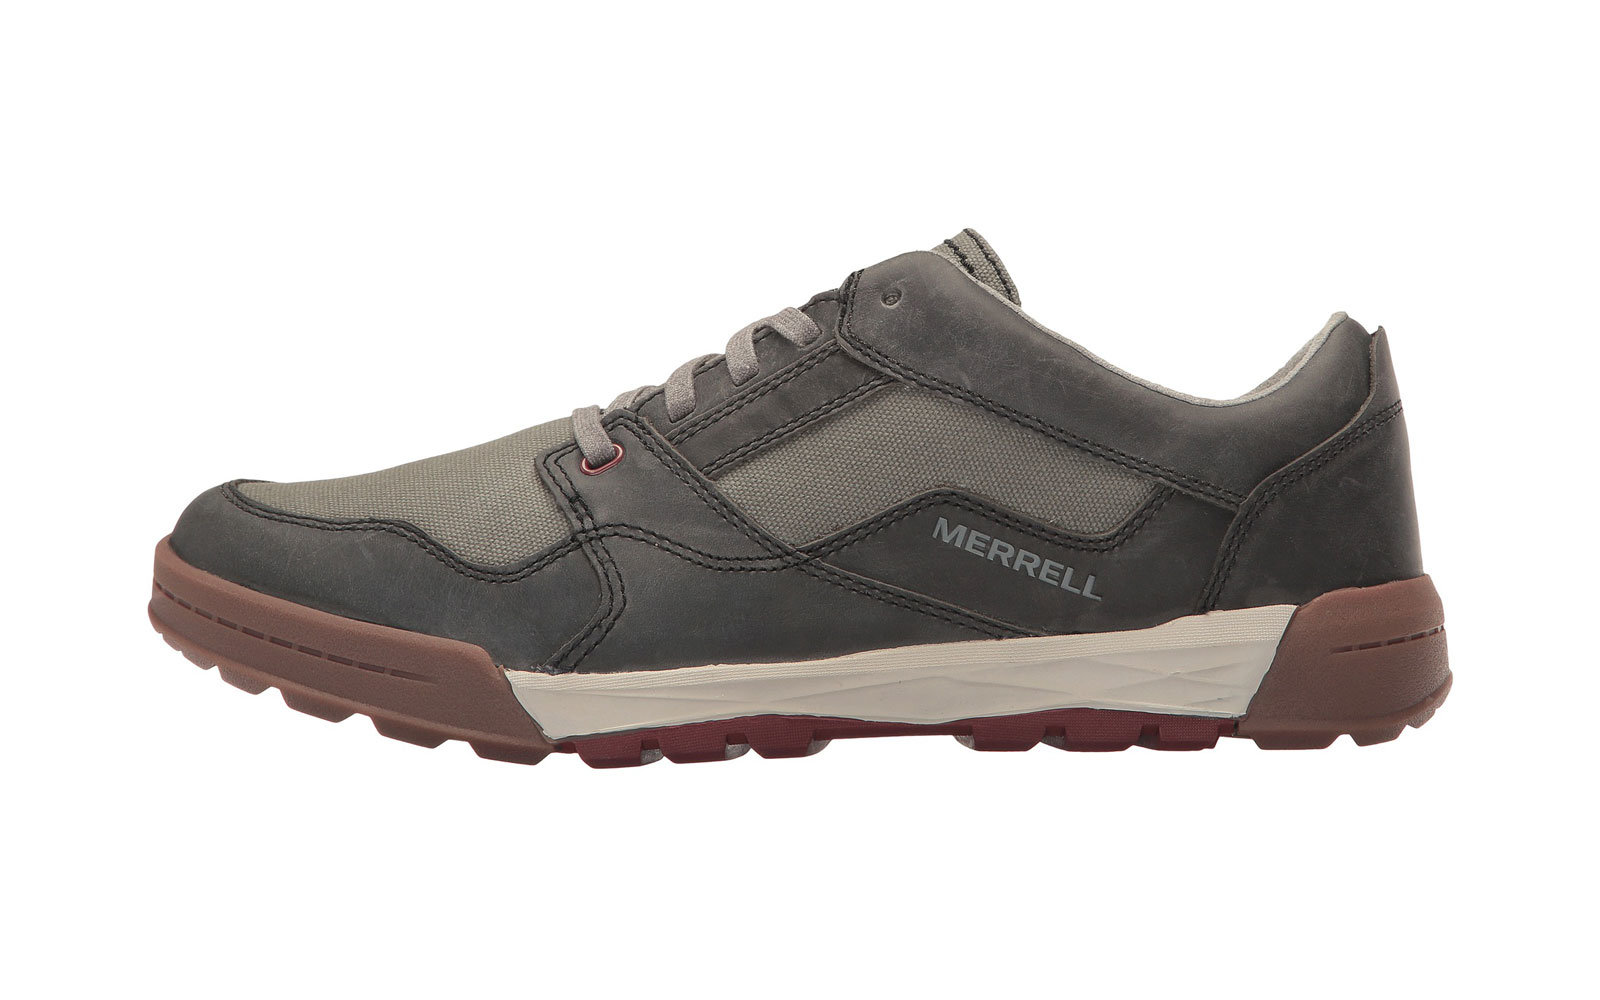 comfortable s walking shoes made for travel travel